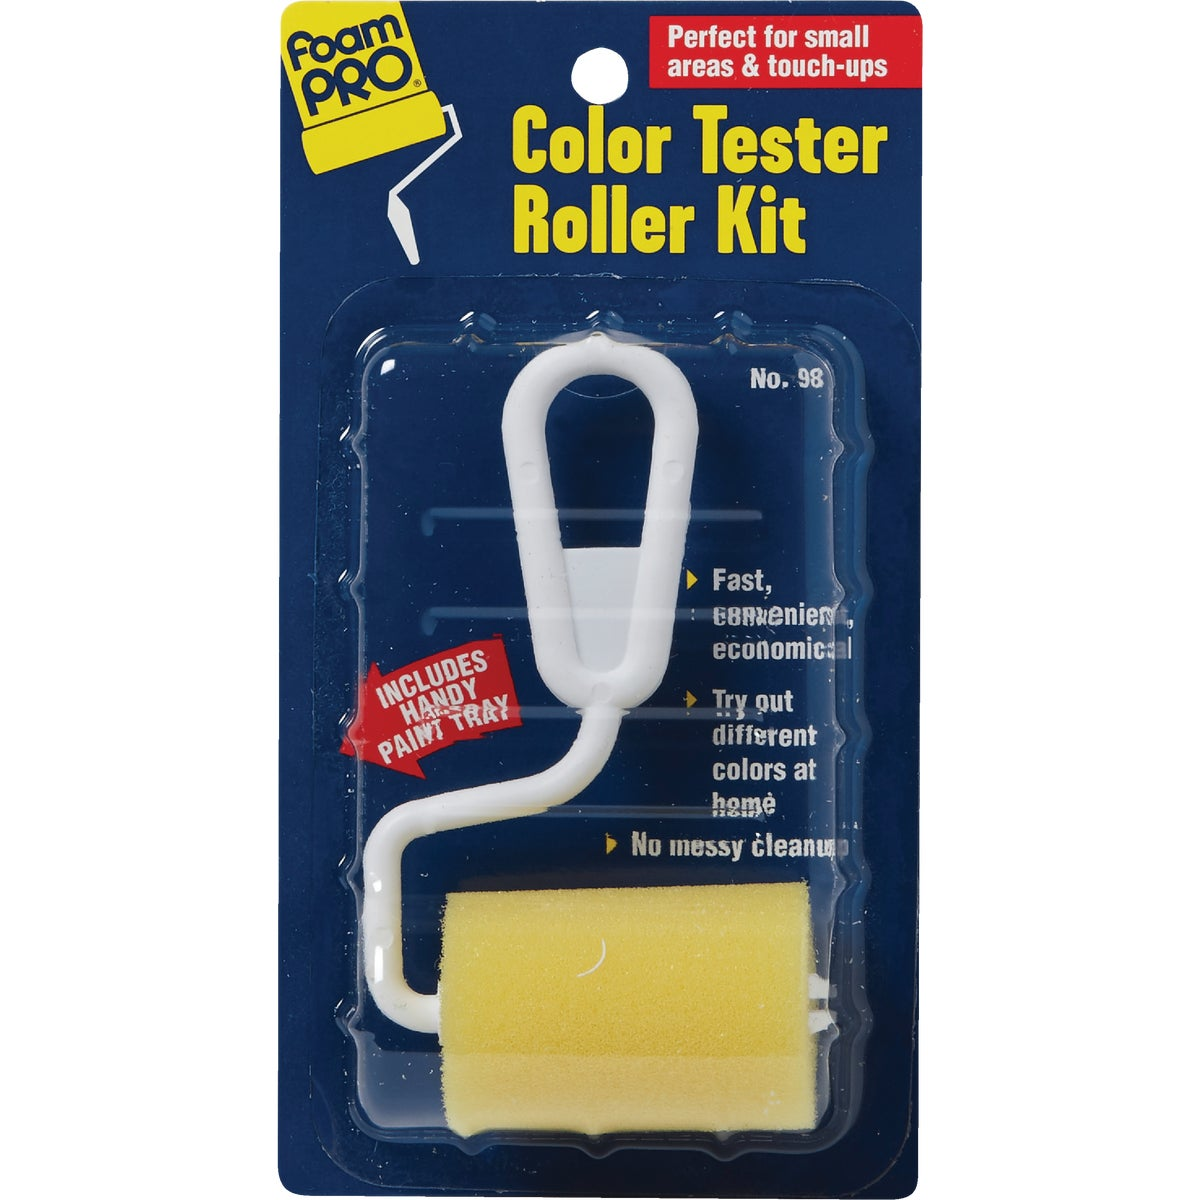 COLOR TESTER ROLLER KIT - 98 by Foam Pro Mfg Inc